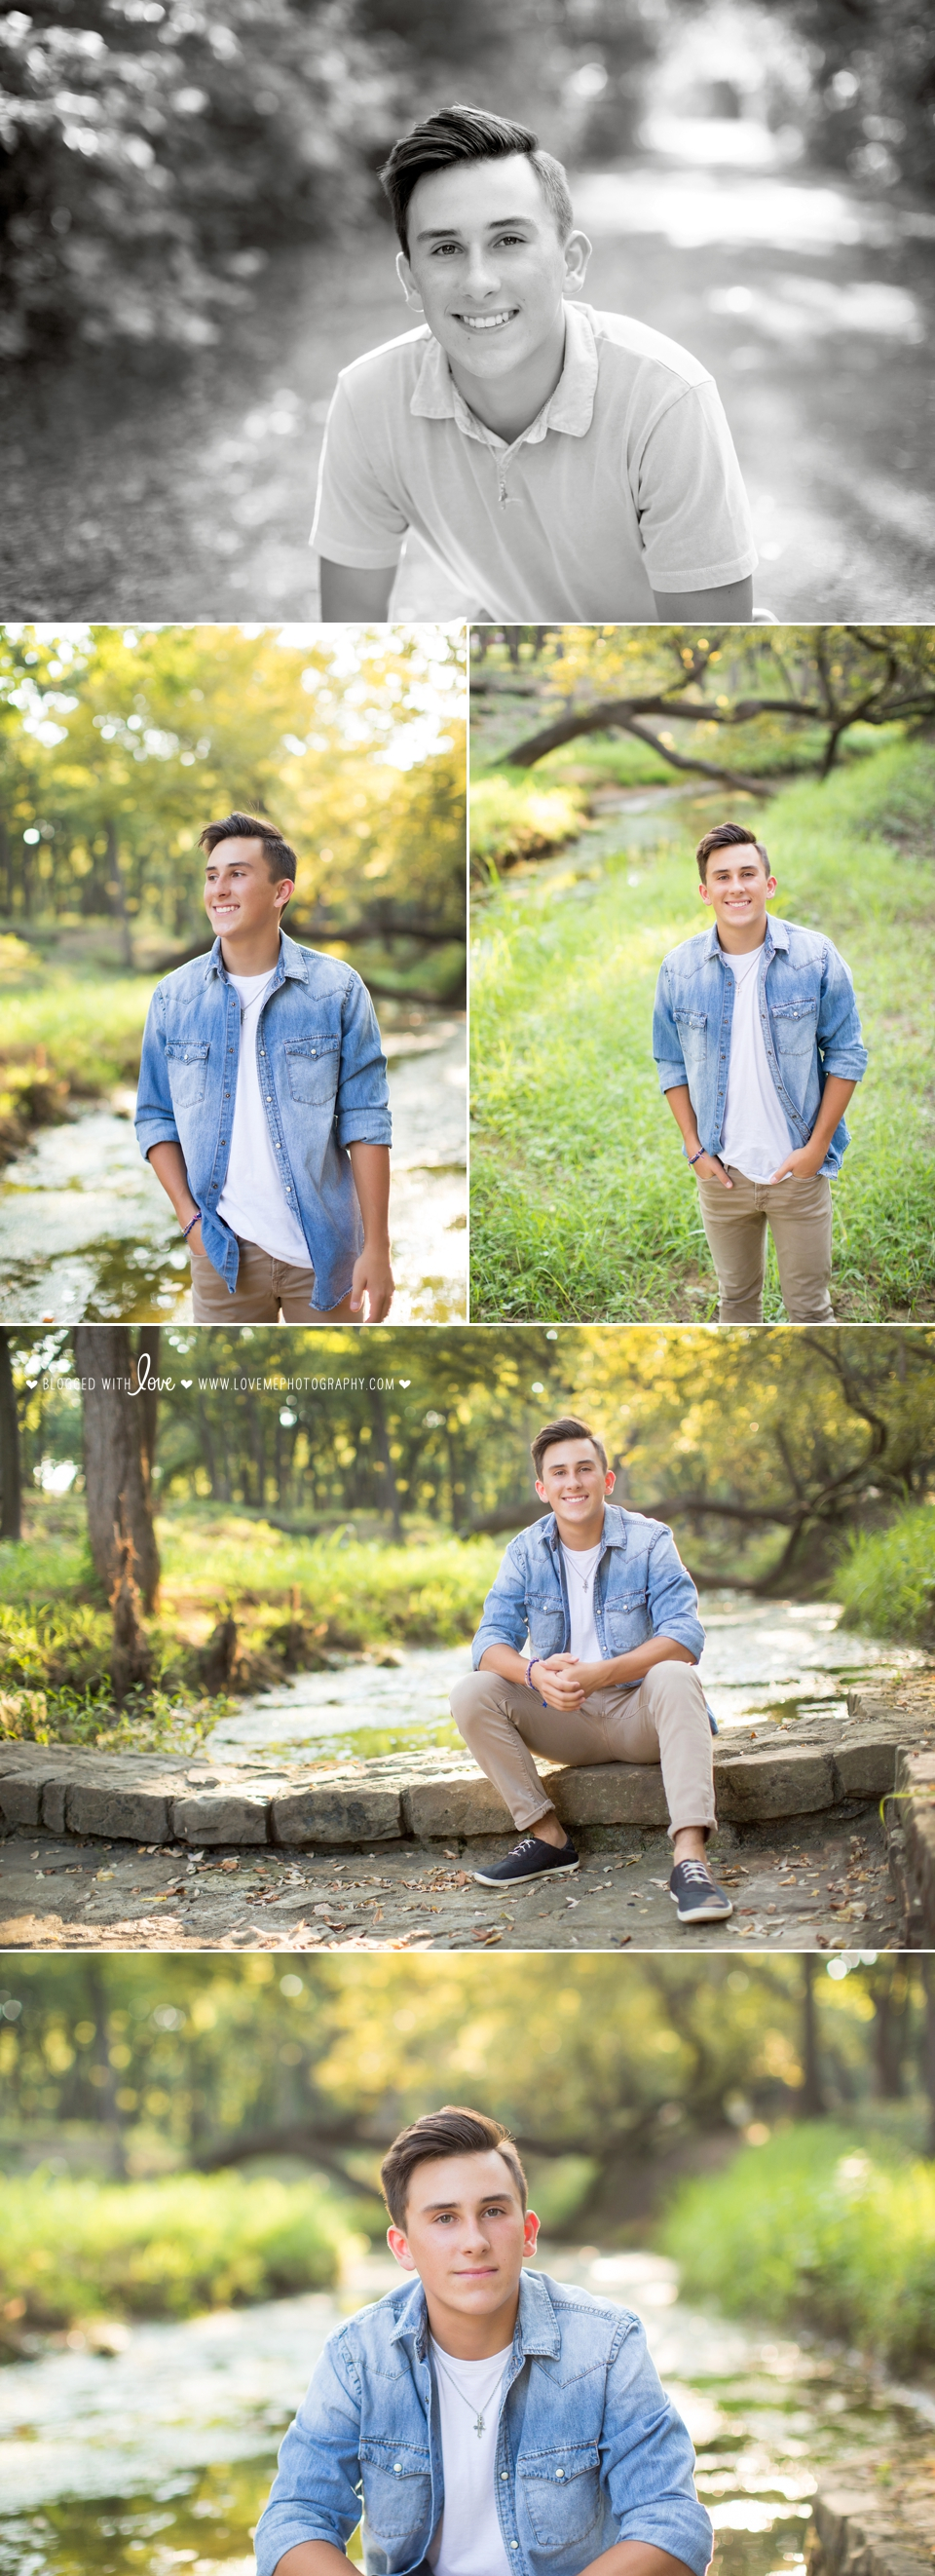 Argyle Senior Portrait Photographer | Love, Me Photography